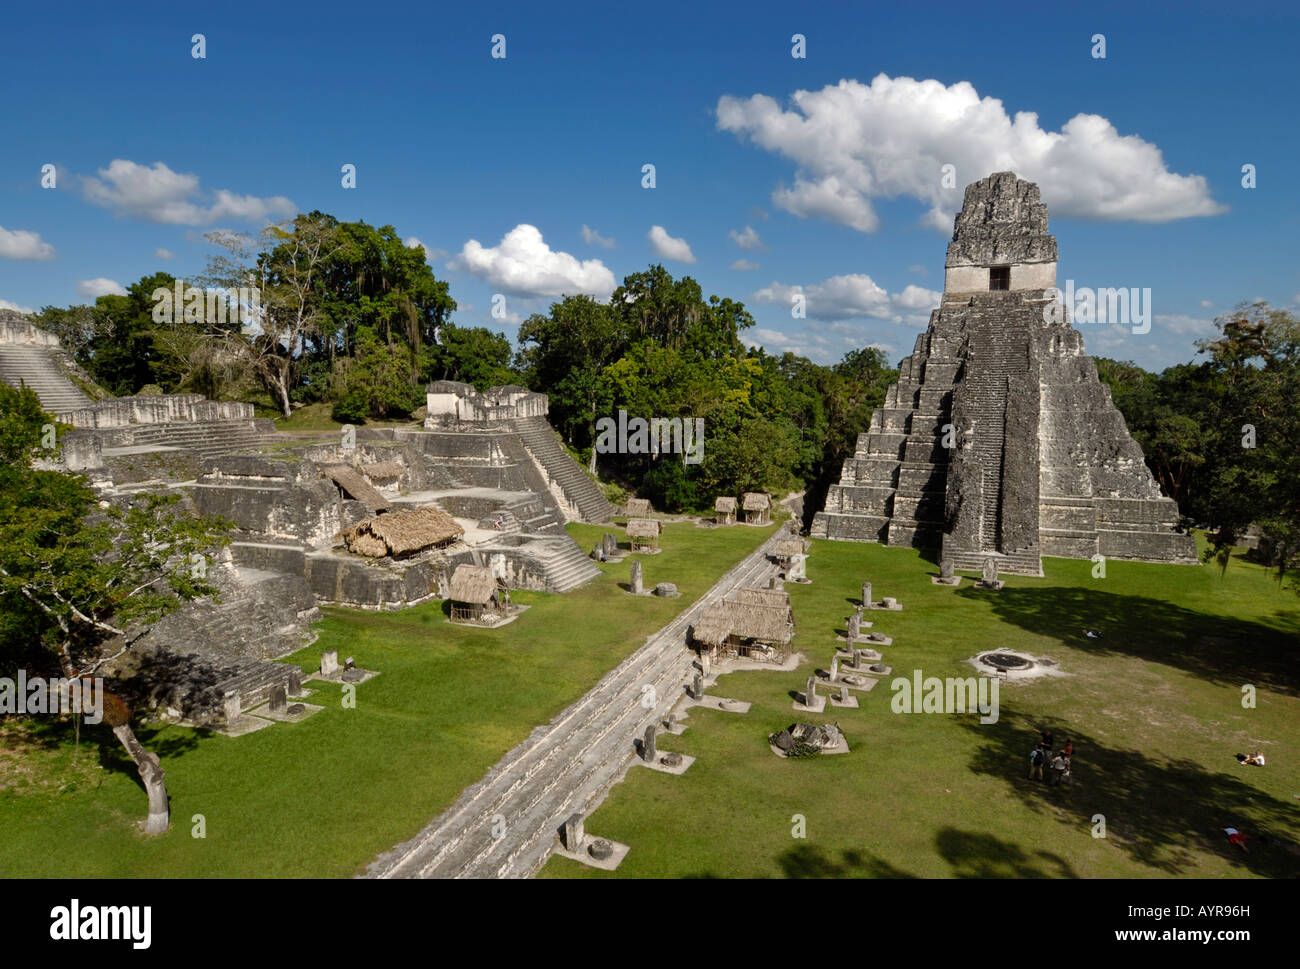 Tikal, Mayan ruins, view from Temple II toward Temple I, Temple of the Giant Jaguar, and the Gran Plaza, Yucatán - Stock Image